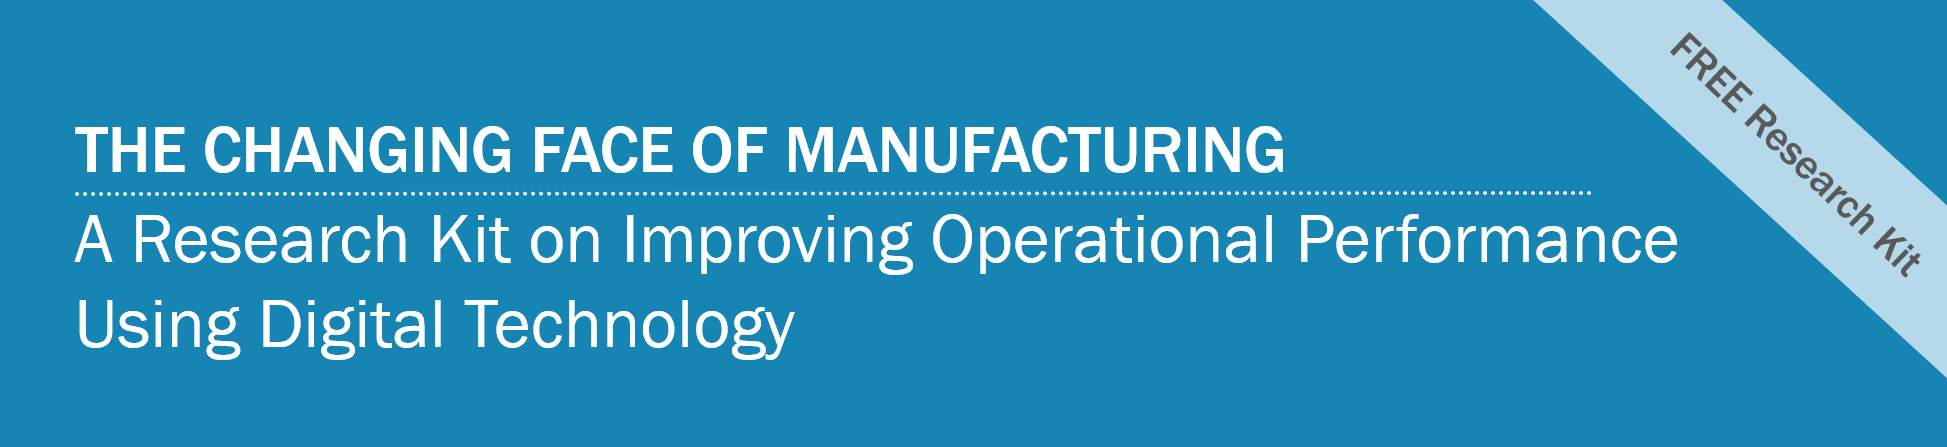 Research Kit: The Changing Face of Manufacturing: Using Digital Technology to Improve Operational Performance